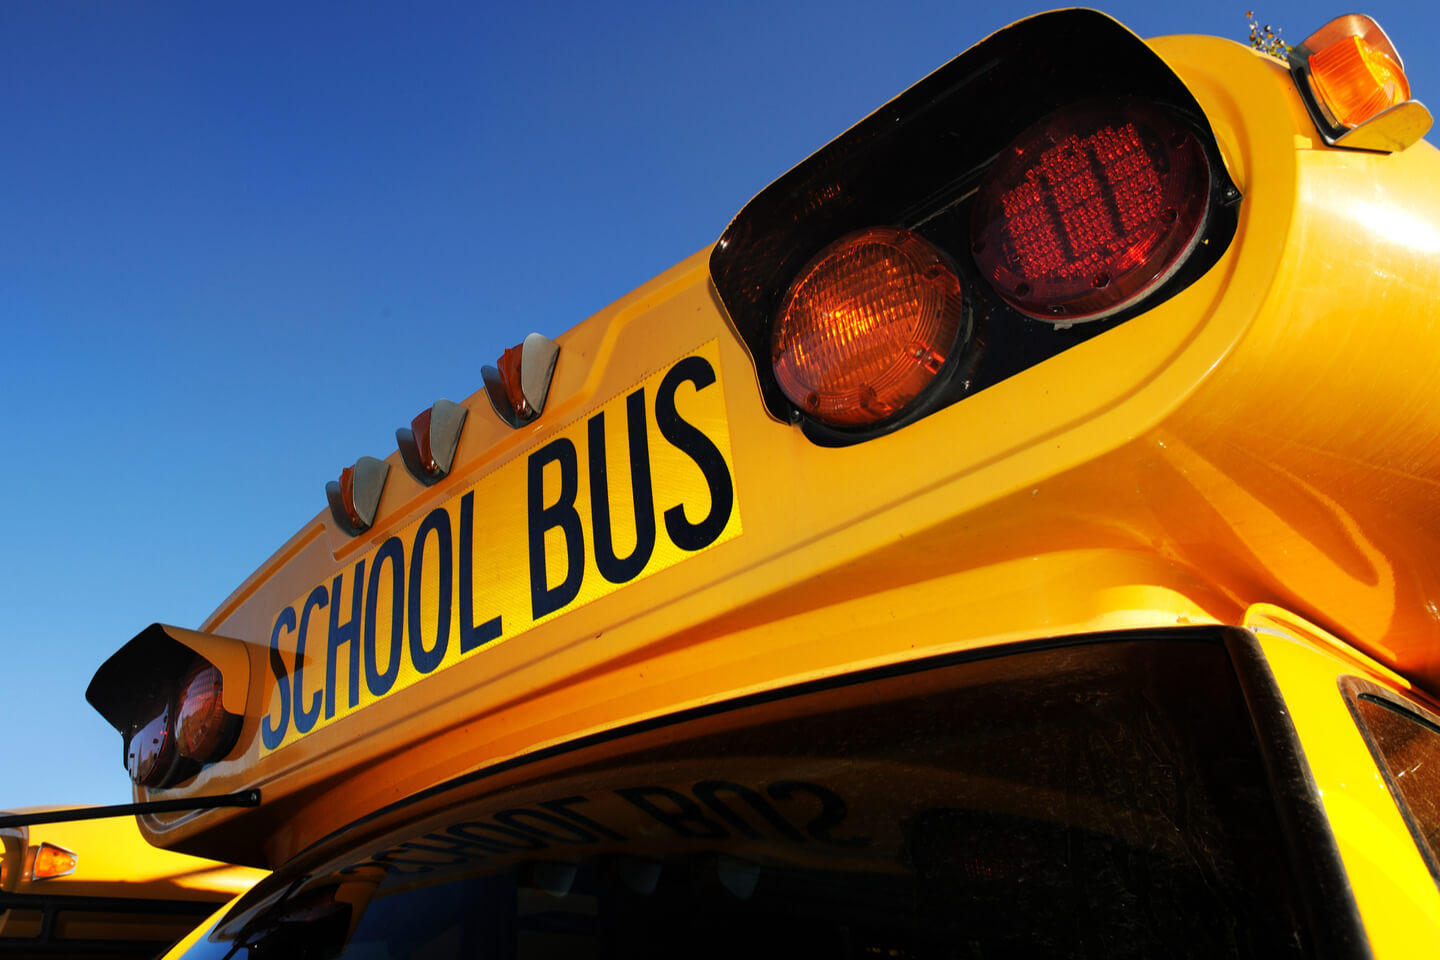 How-To Guide to Renting A School Bus